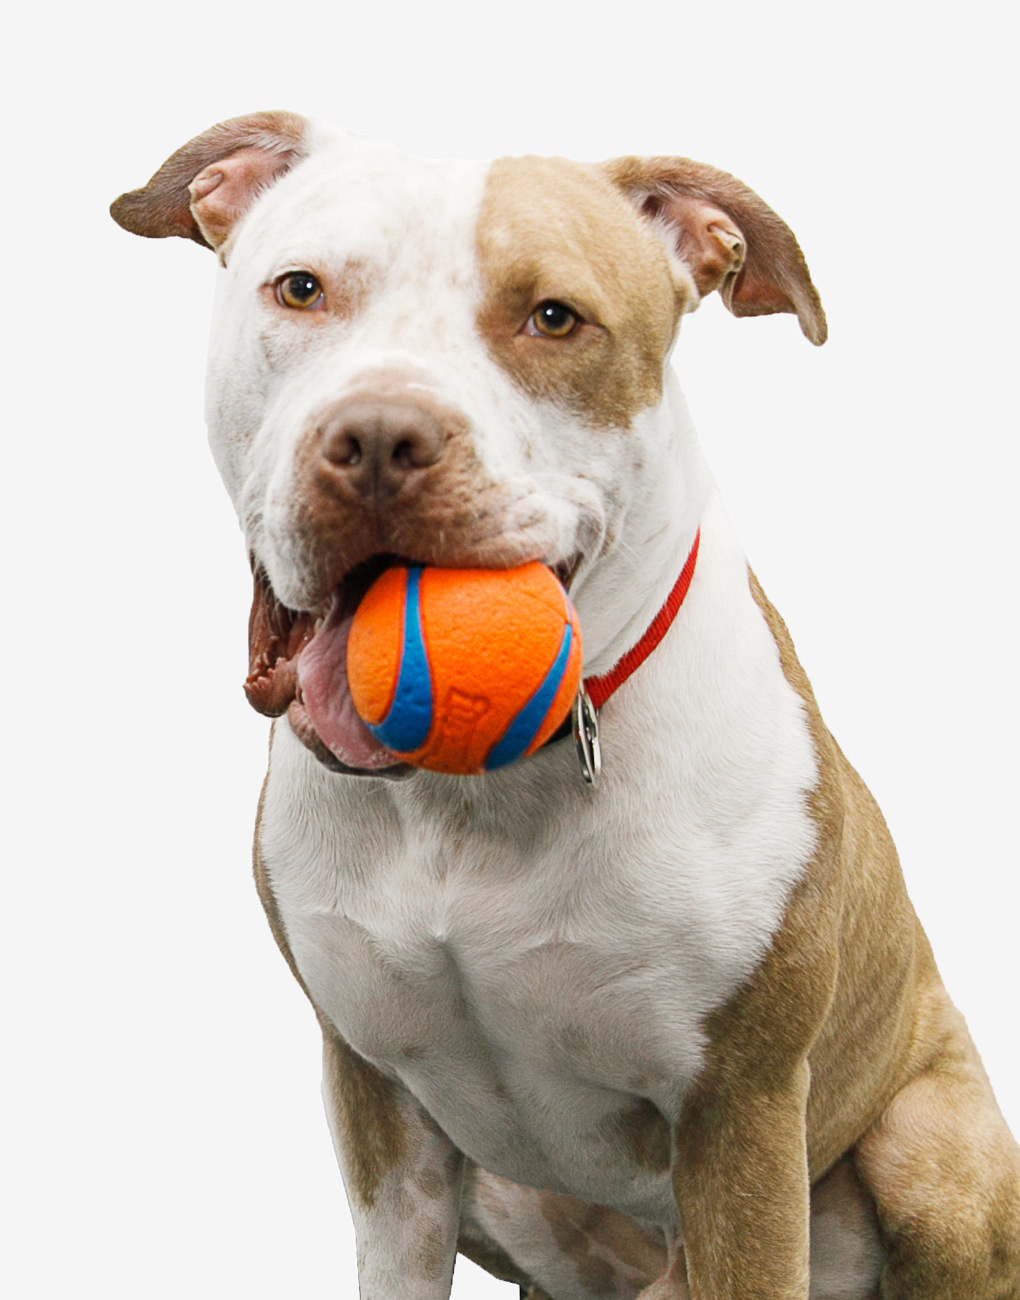 A brown and white pitbull breed dog named Fred with an orange squishy toy ball in his mouth.